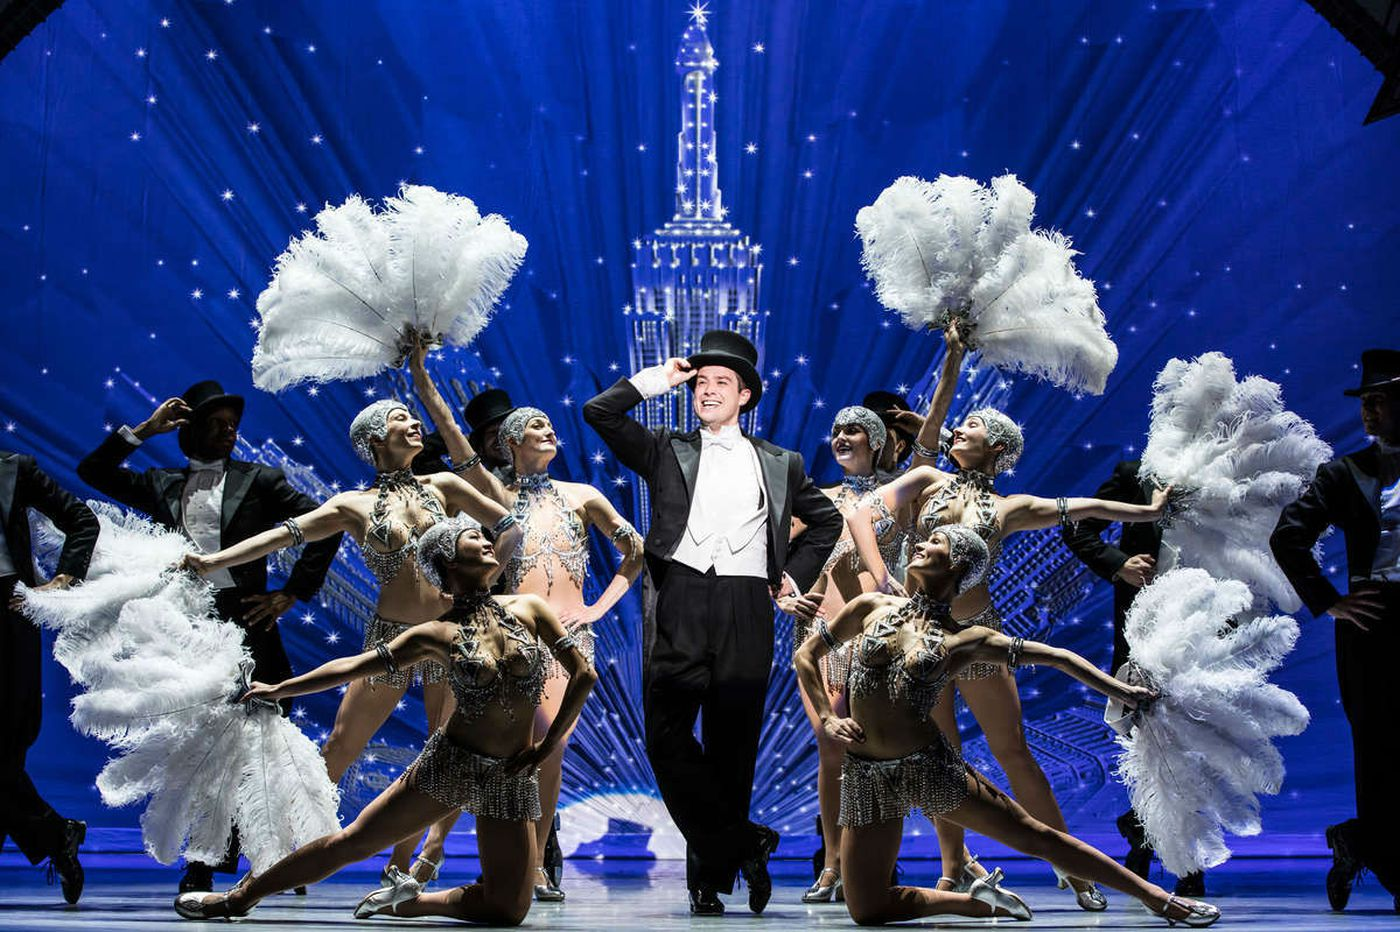 'An American in Paris': Ecstatic joy of freedom